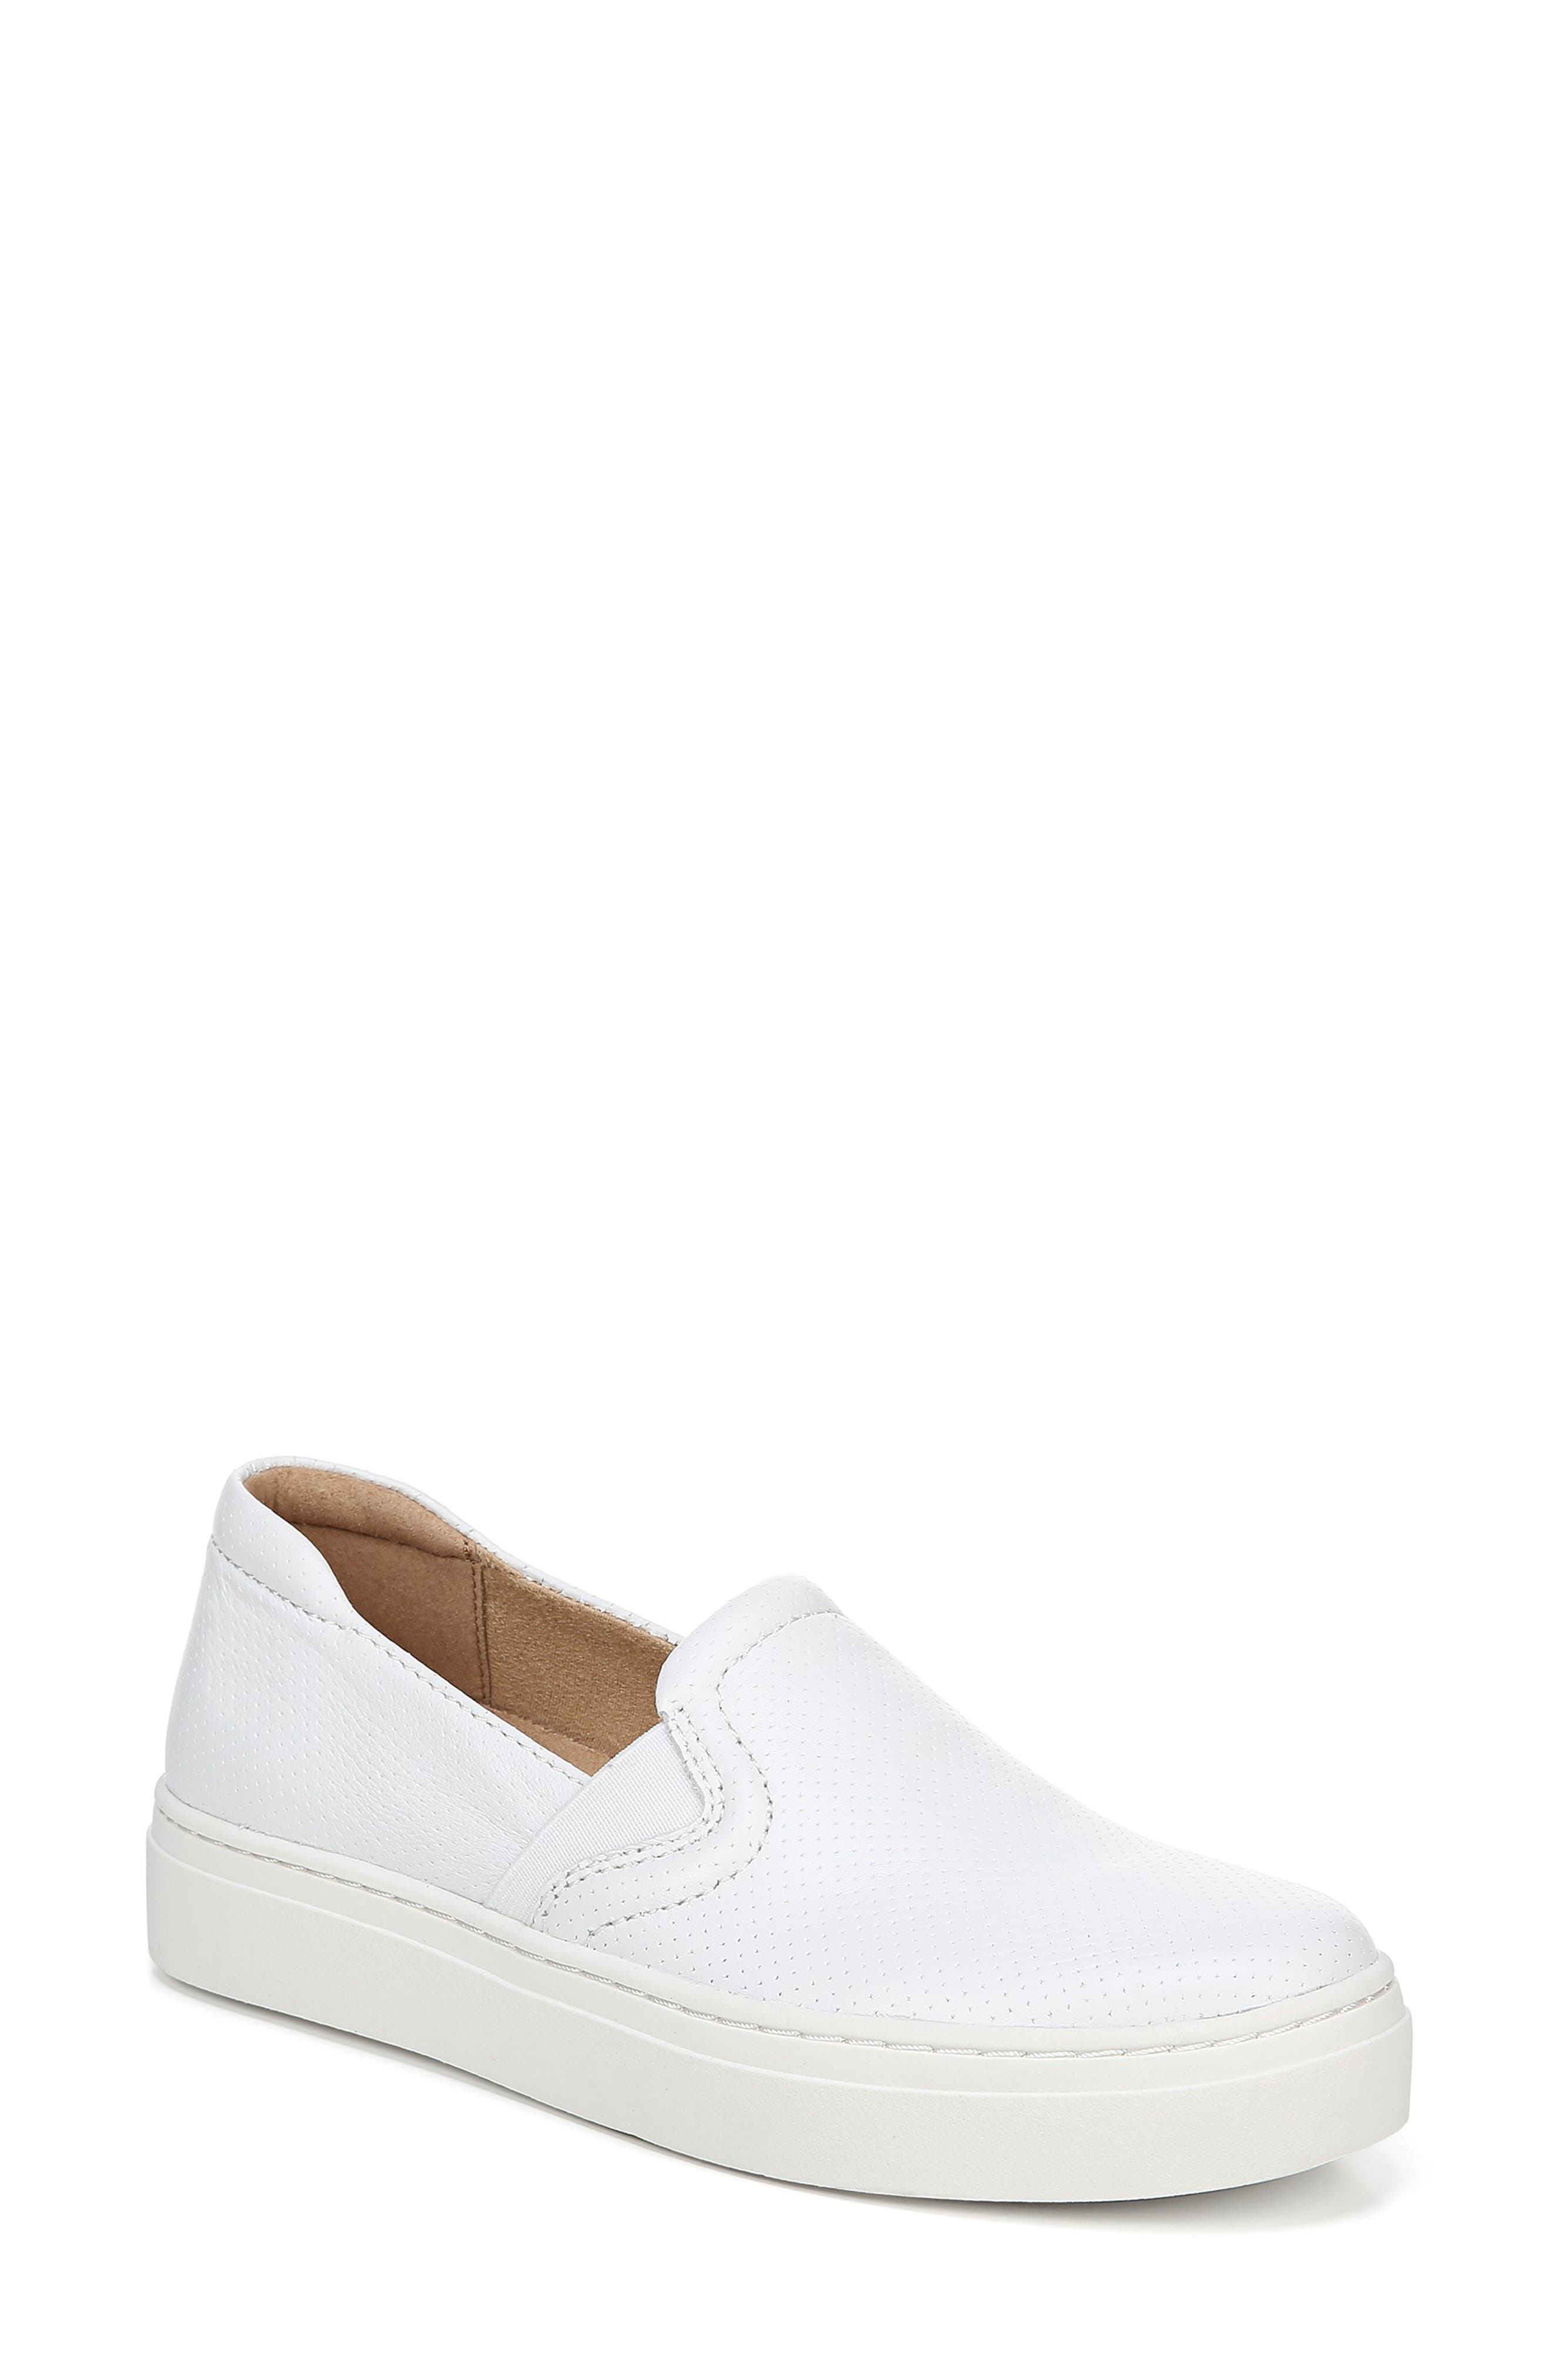 Naturalizer Carly Slip-On Sneaker, White